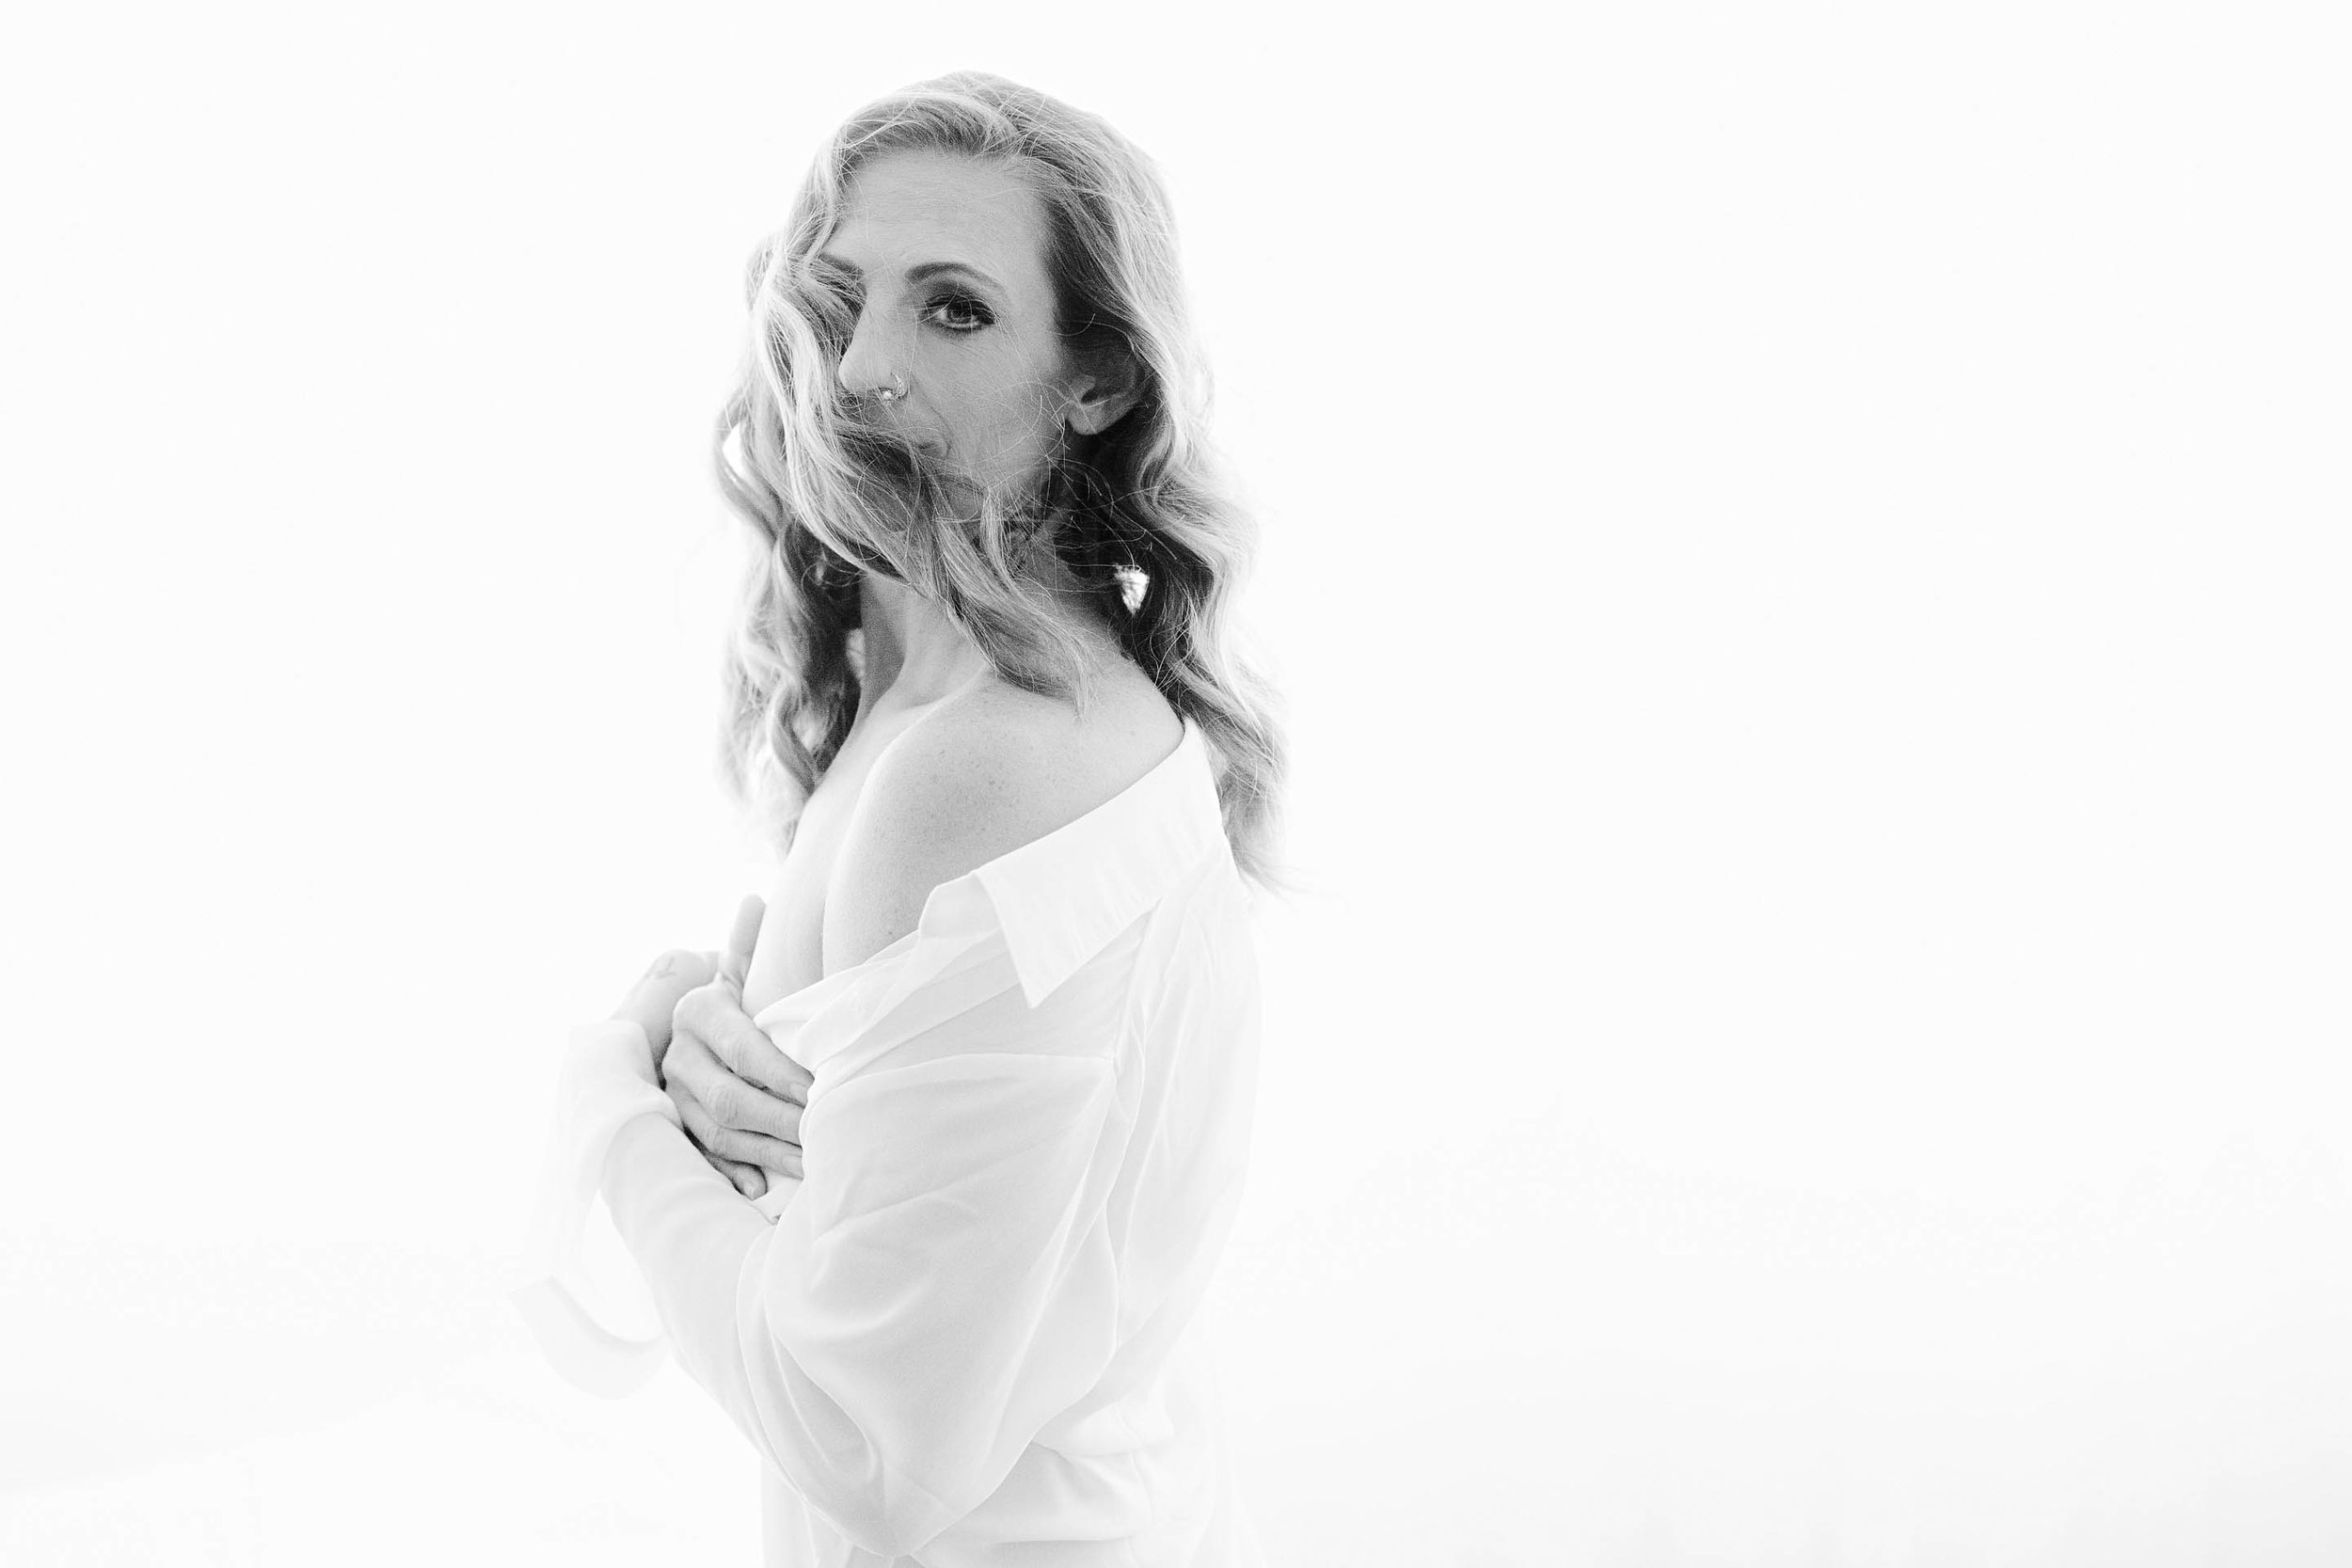 white shirt boudoir - backlighting - beautiful - unique boudoir photography in Asheville